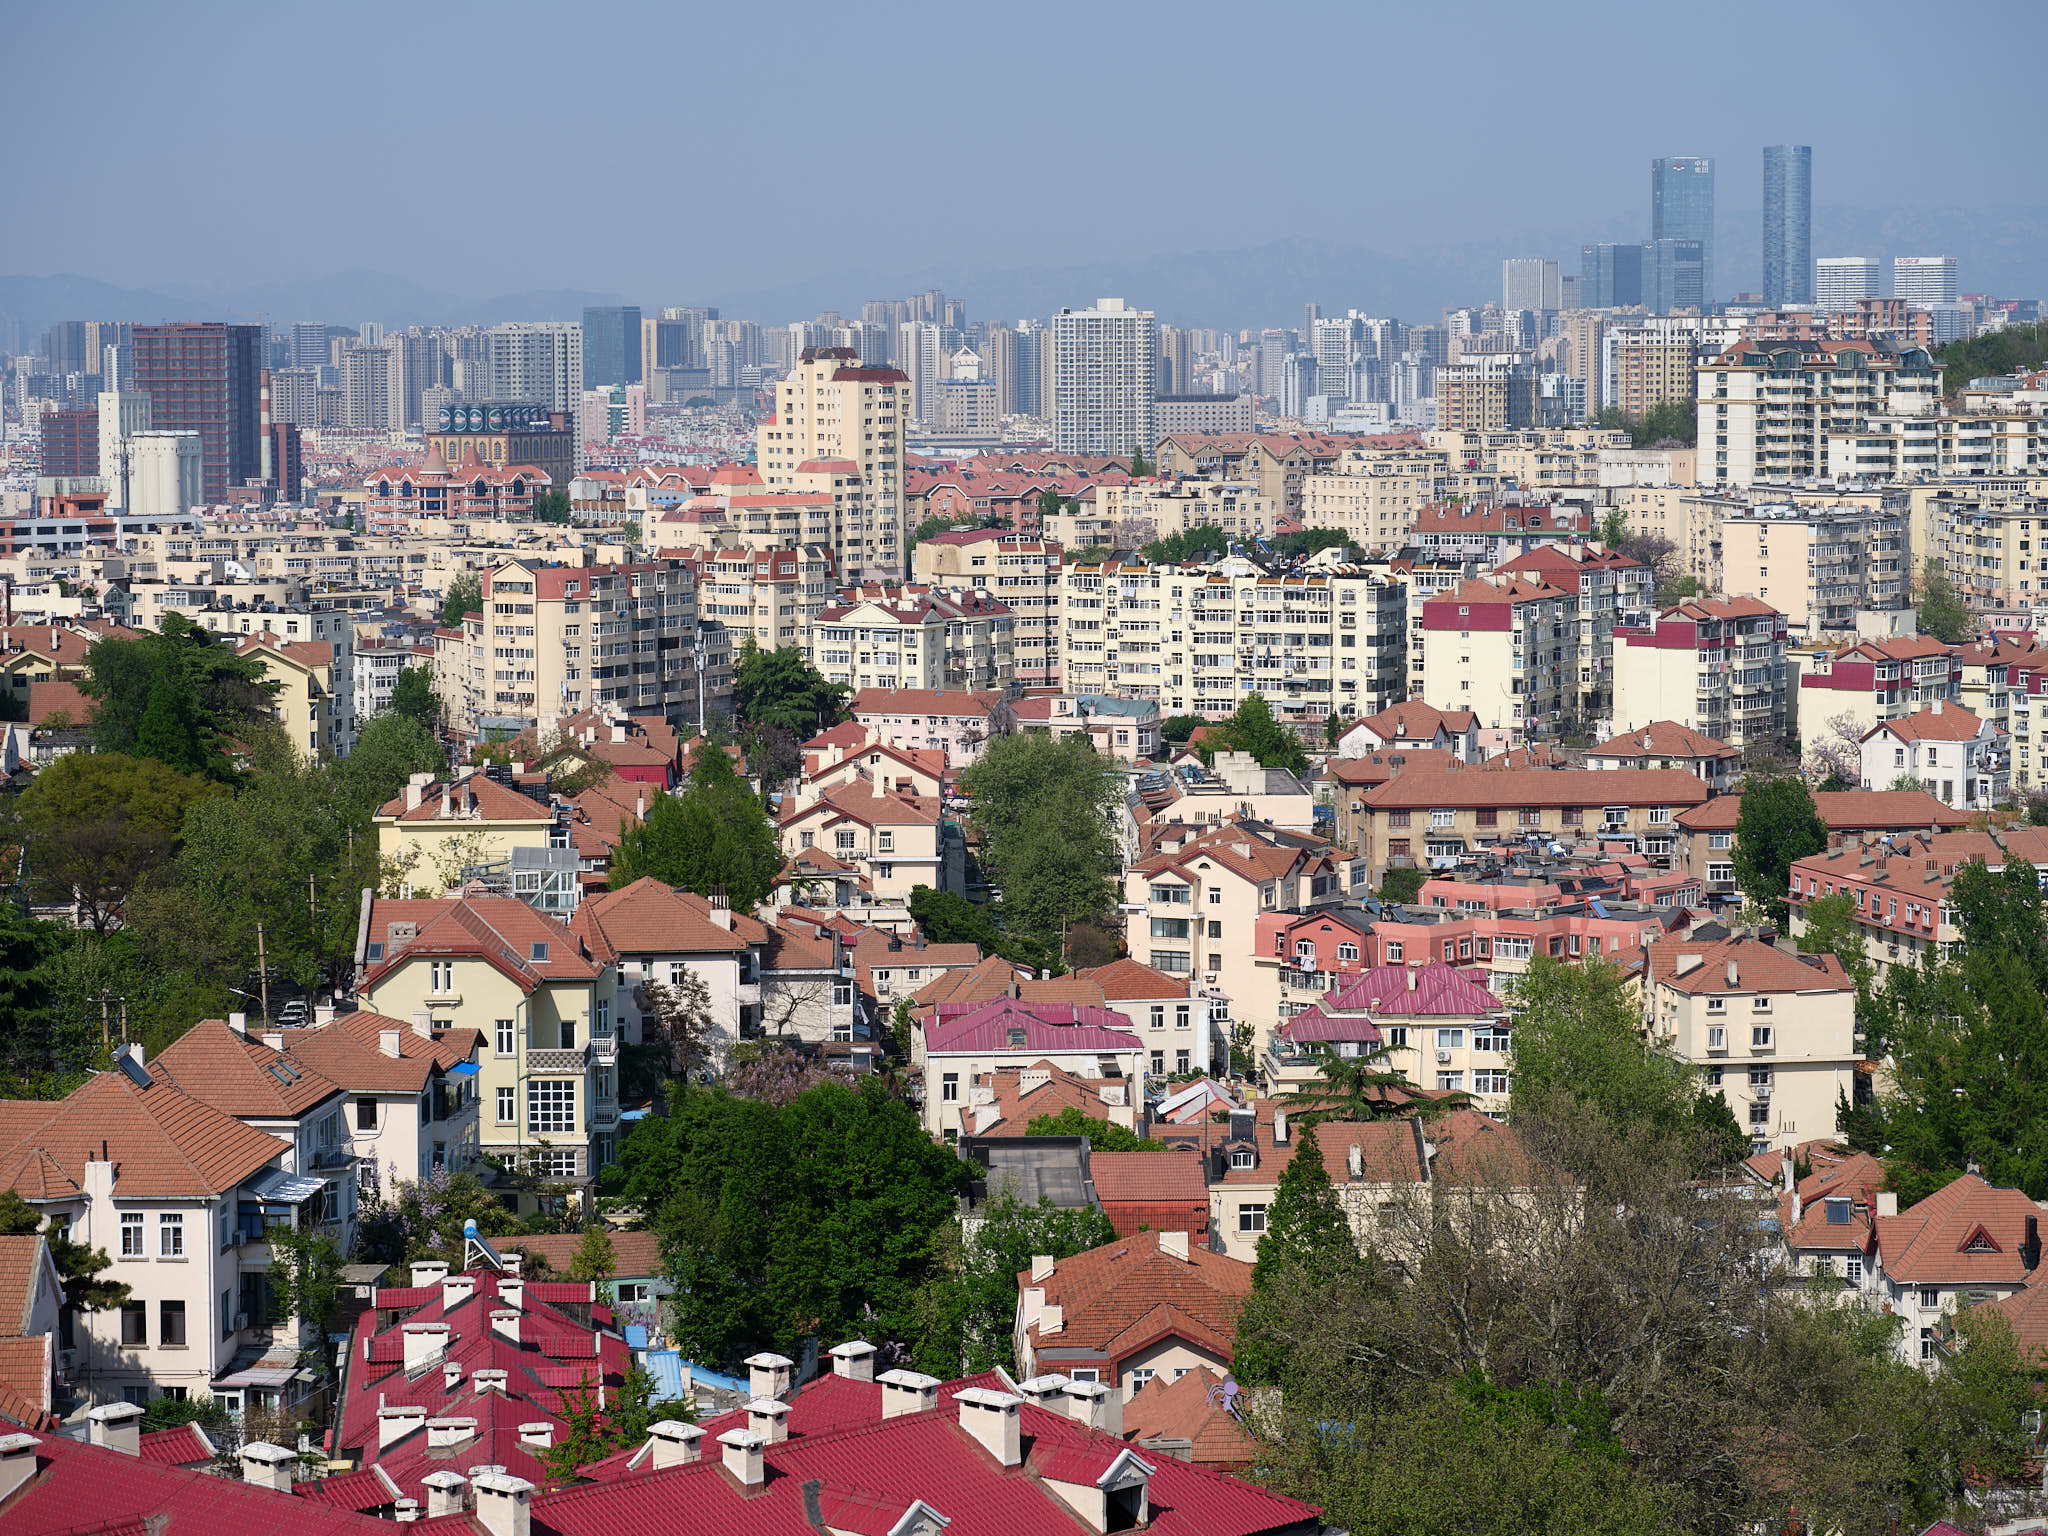 View of Qingdao from Signal Hill